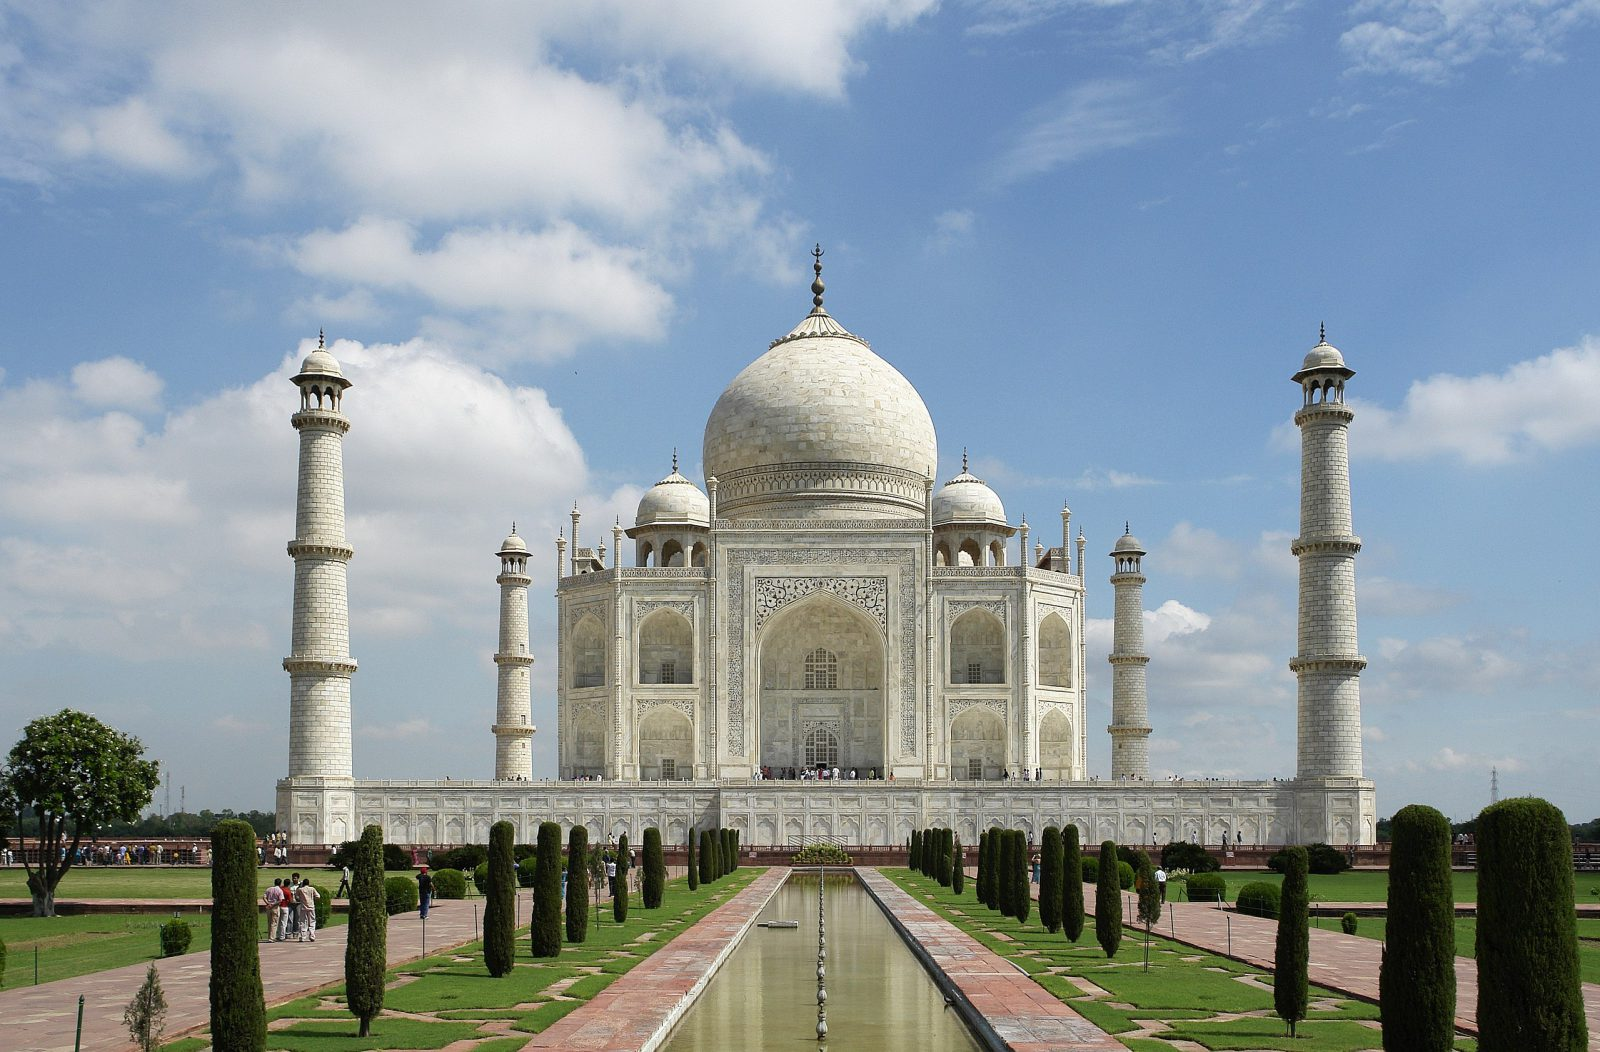 Flight Deal Round Trip From Chicago Area to Delhi #chicago #delhi #2weeks